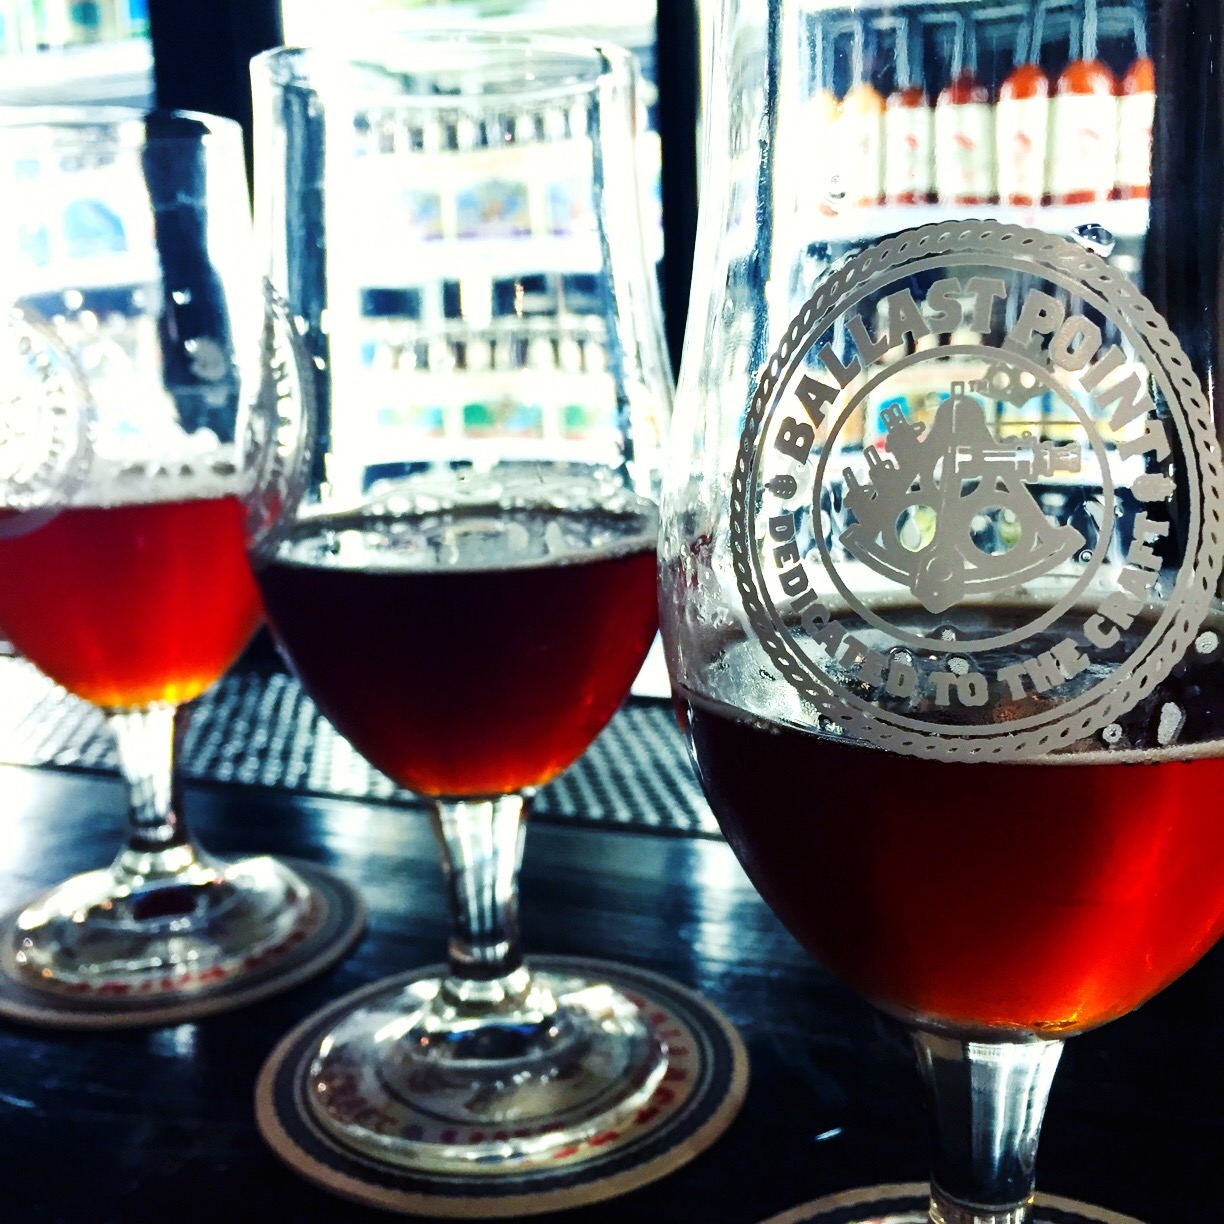 Ballast Point tasting room